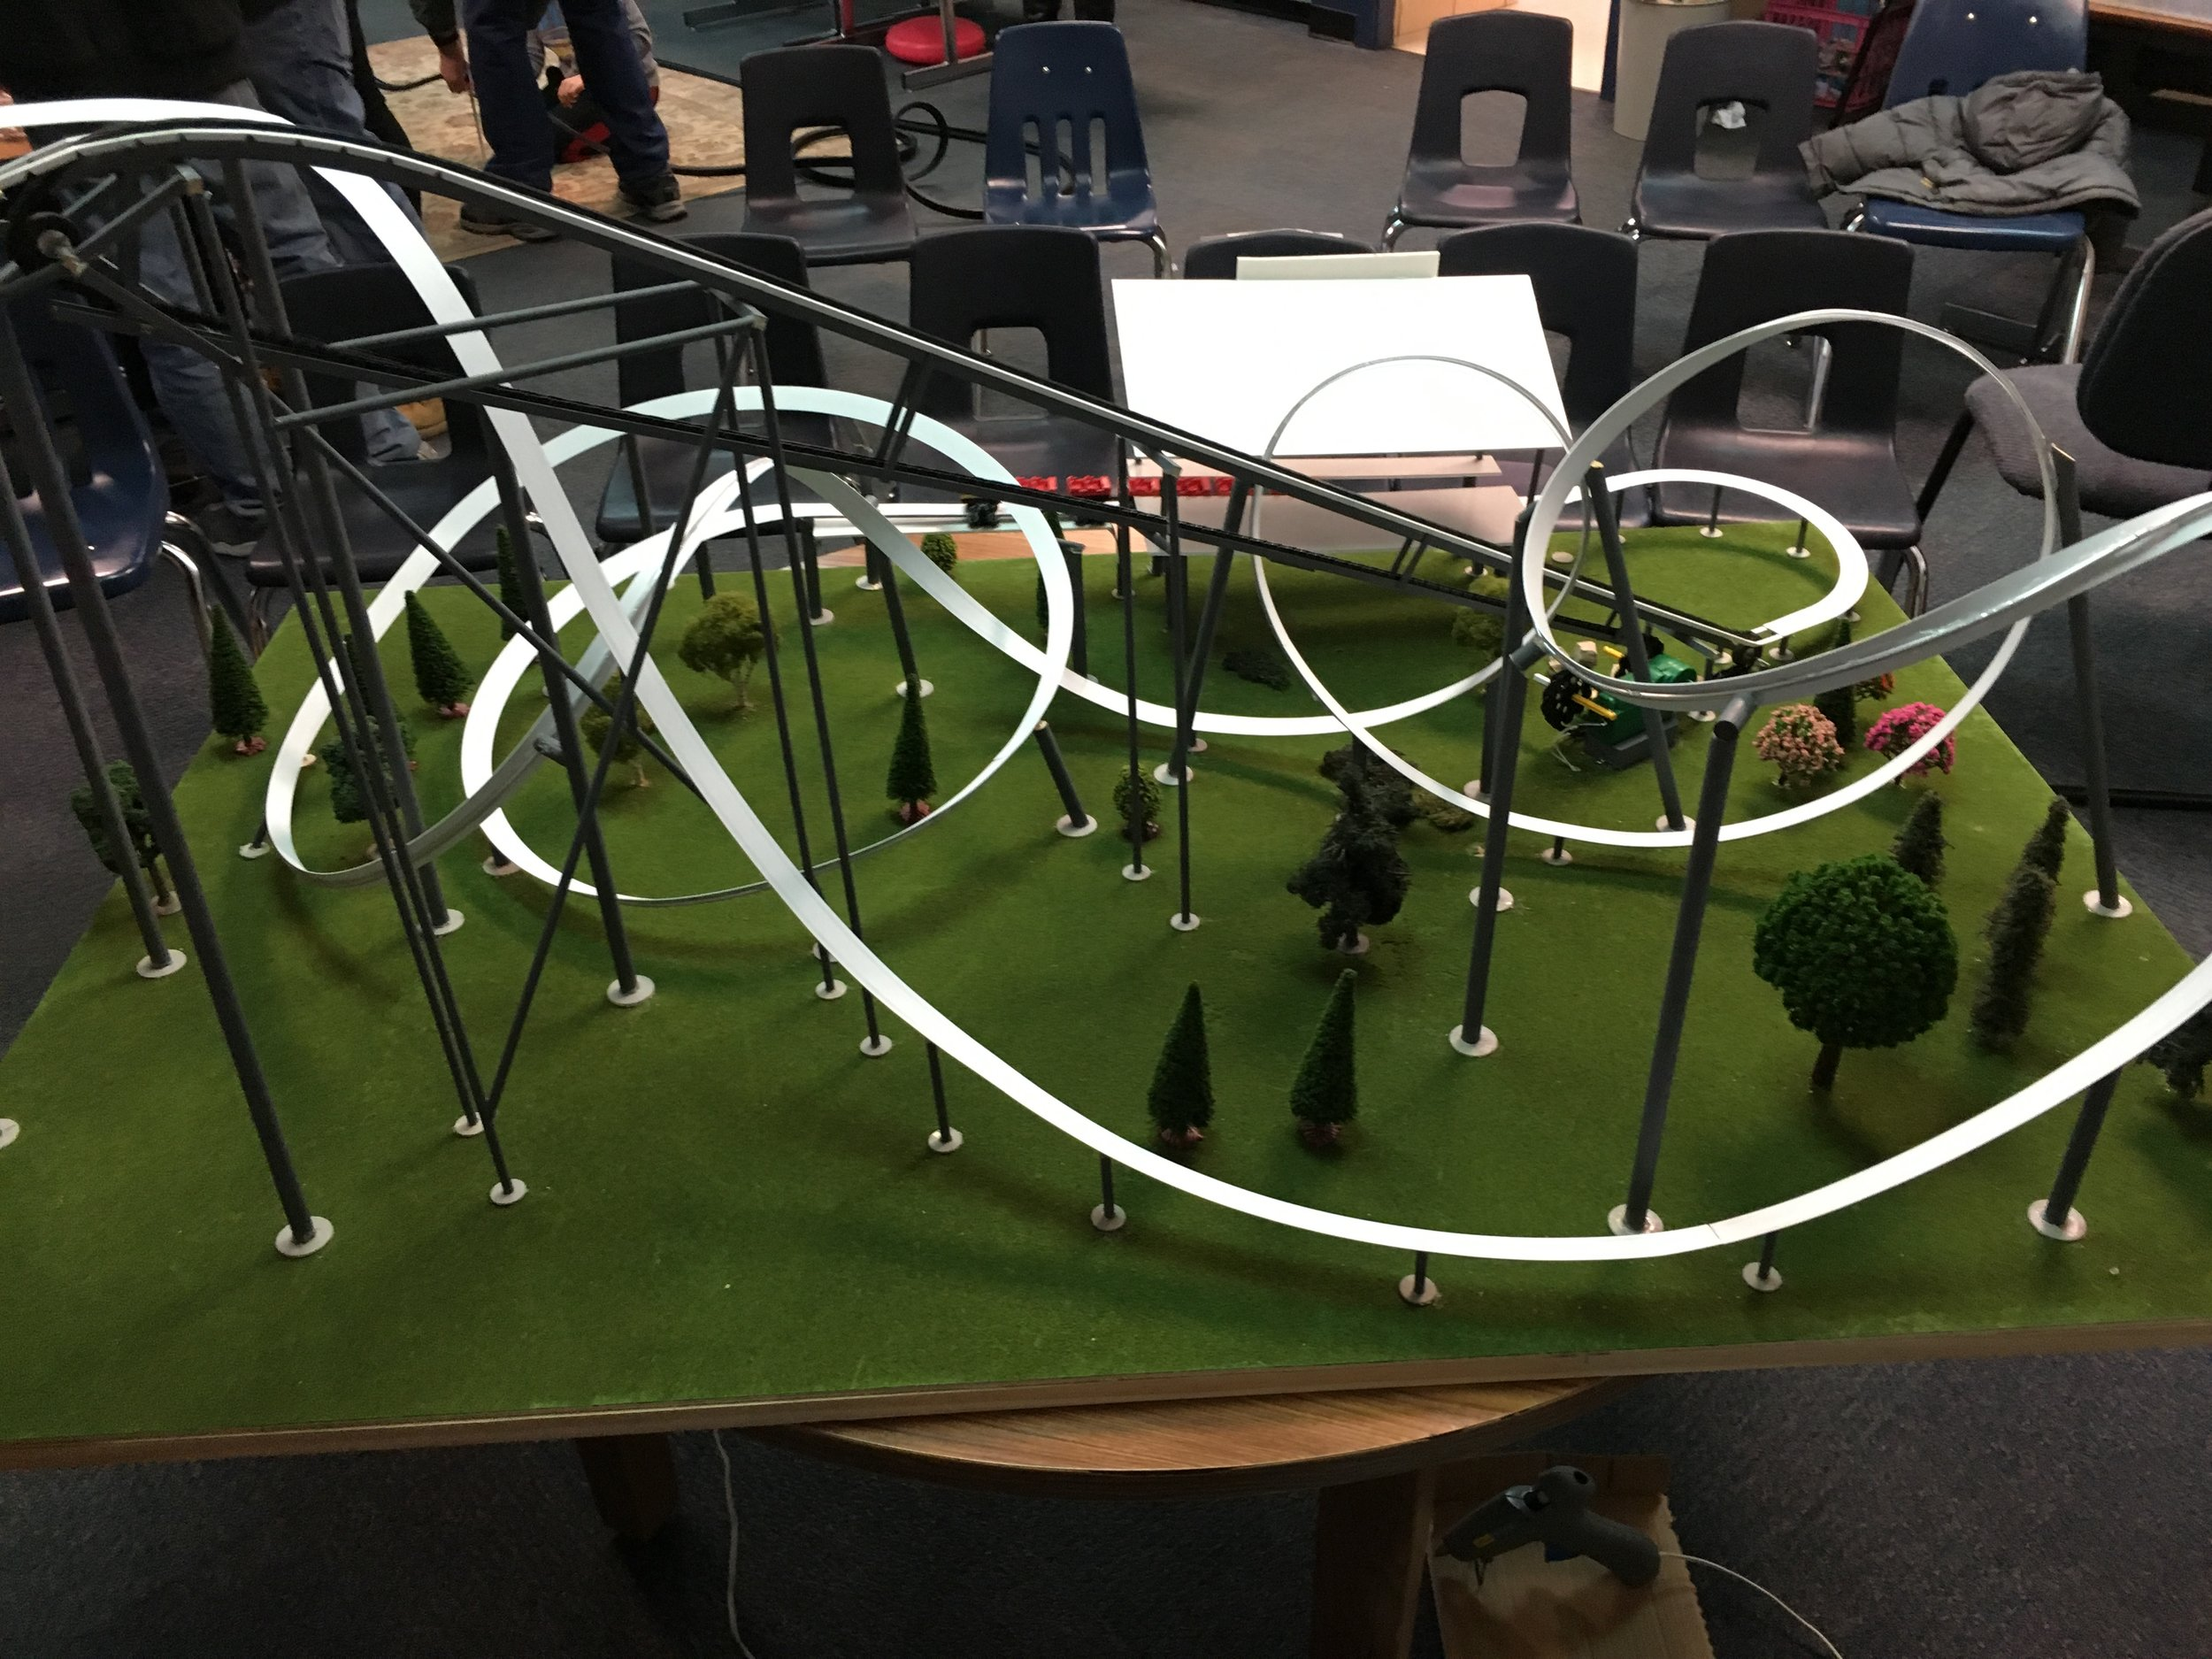 """The coaster was built for display at a friends school where she is a teacher back in February. It was built in 5 days, a """"speed build"""". I wasn't happy with the station and it also had some operational issues."""